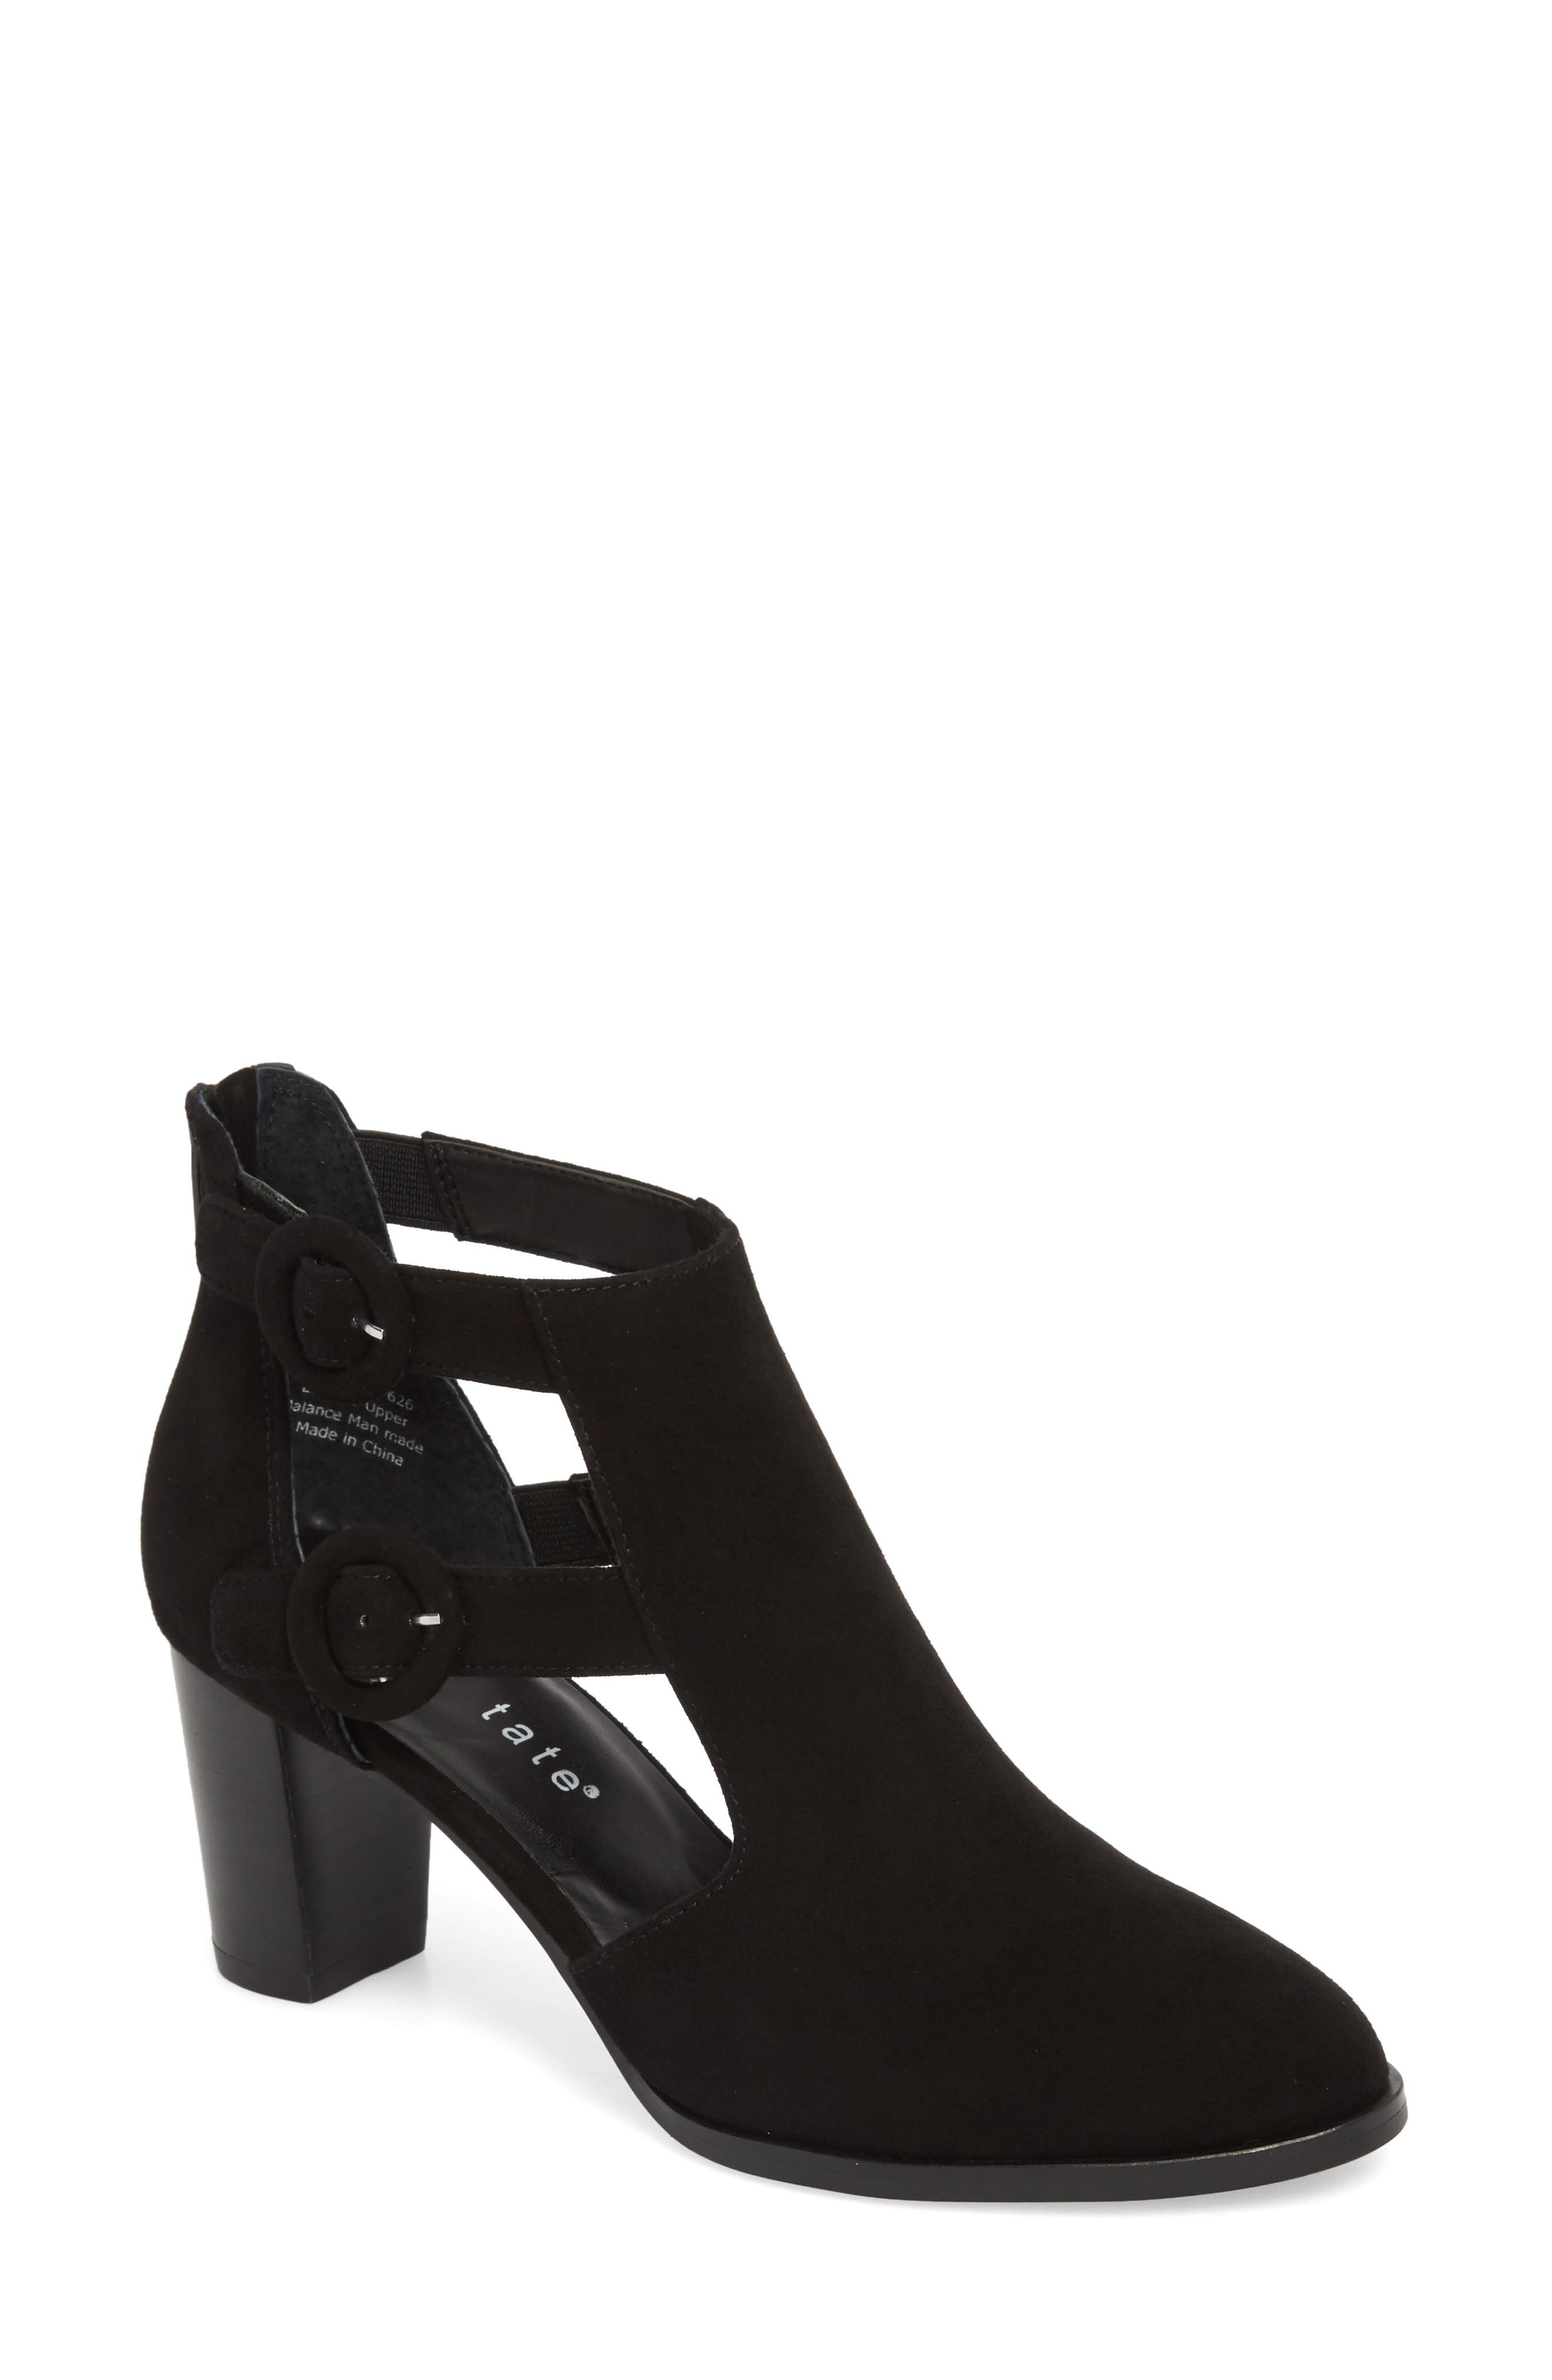 DAVID TATE, Exotic Caged Bootie, Main thumbnail 1, color, BLACK SUEDE